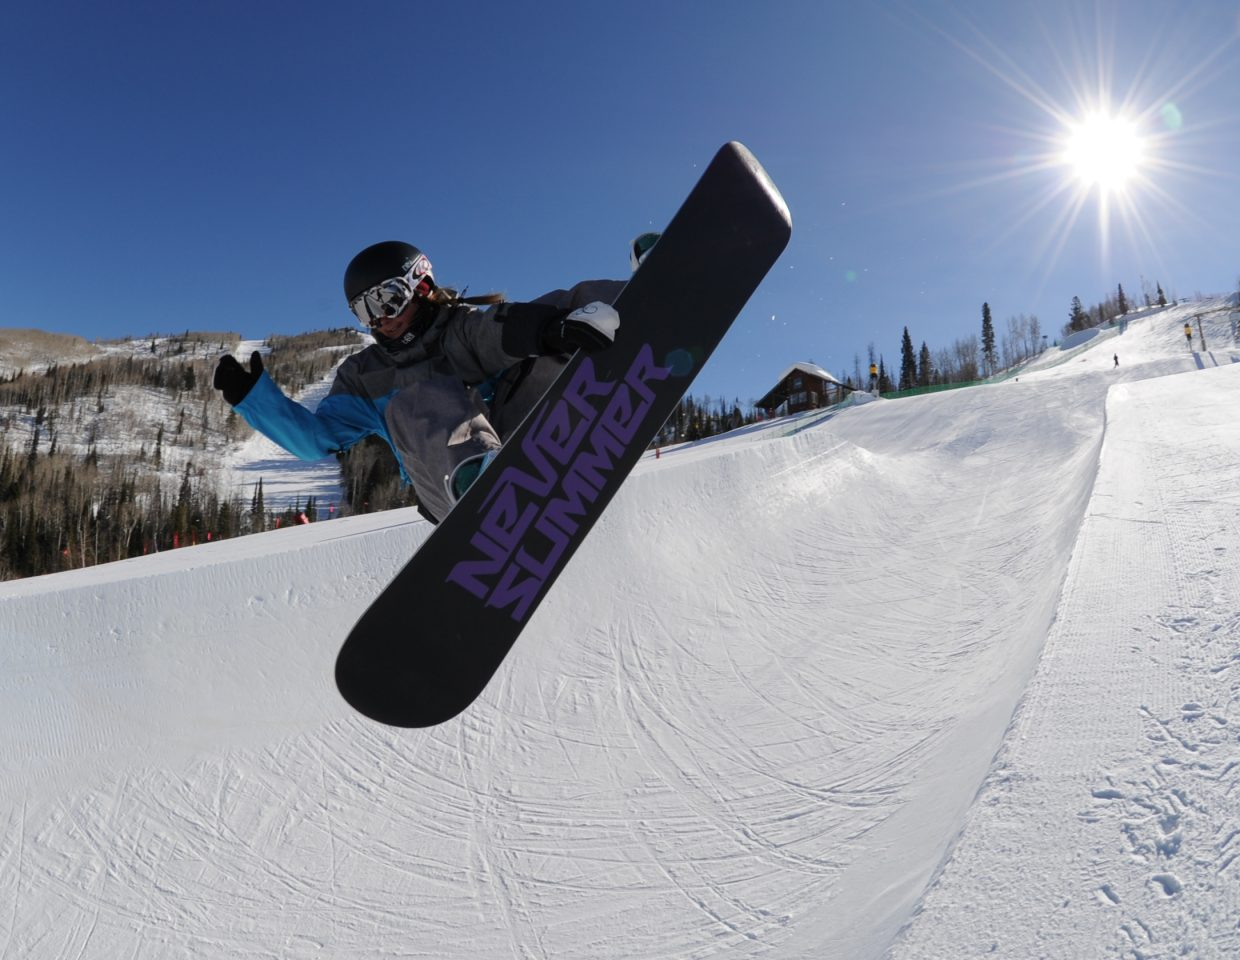 The Mavericks half-pipe has been a staple of the Steamboat Ski Area terrain park for more than two decades, but ski area officials said declining use caused them to pause this year when considering building the pipe for the 2016-17 season. The project is resource demanding, taking up as much as 15 percent of the man-made snow the mountain produces every autumn.